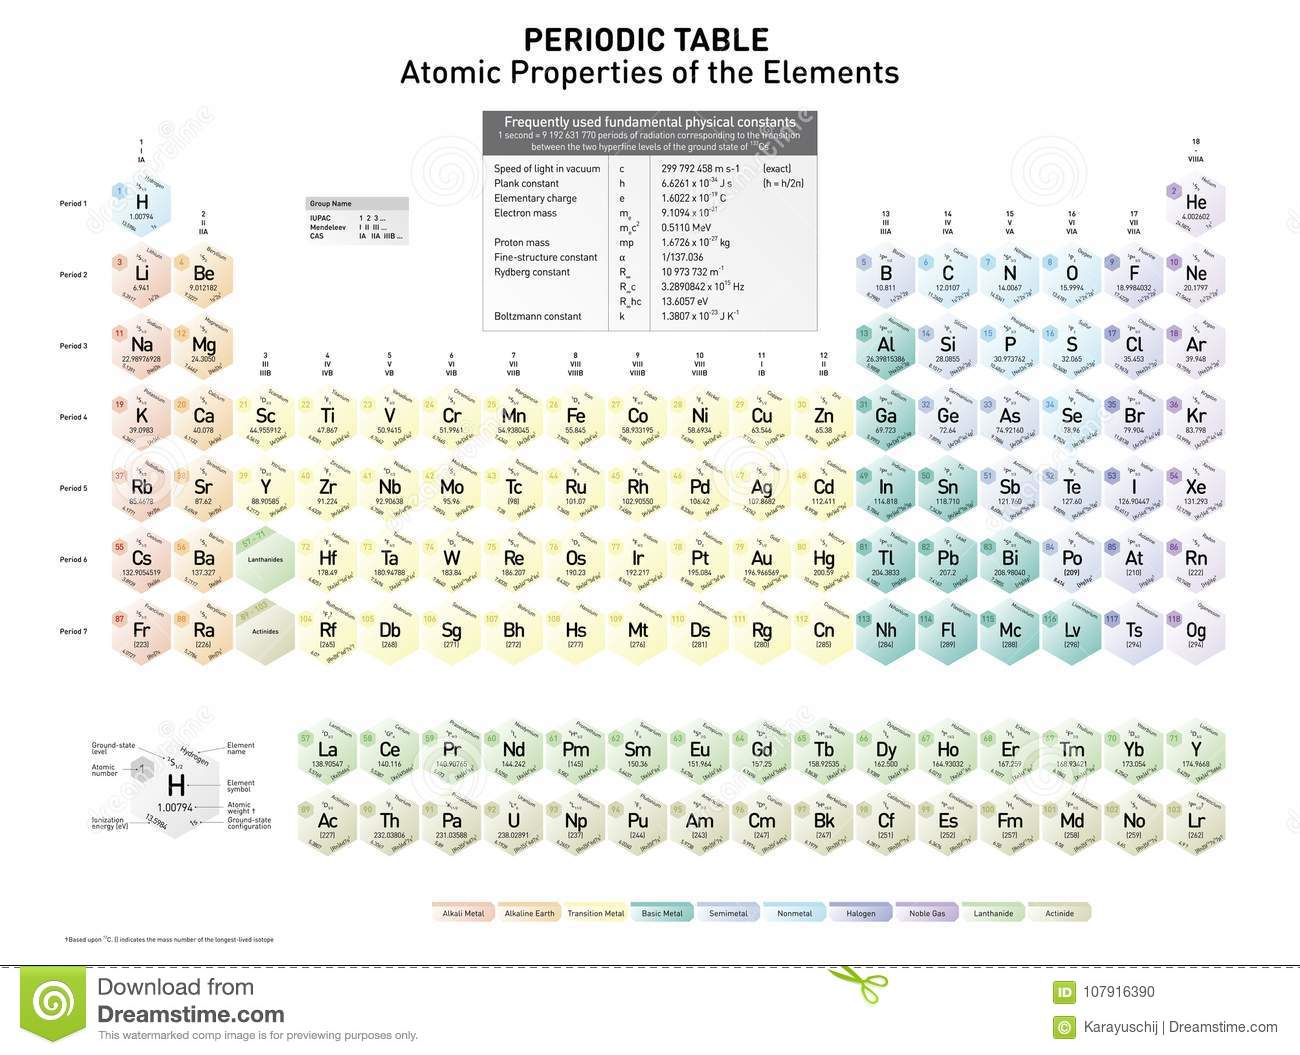 Periodic table of the elements stock vector illustration of period download periodic table of the elements stock vector illustration of period laboratory 107916390 urtaz Choice Image